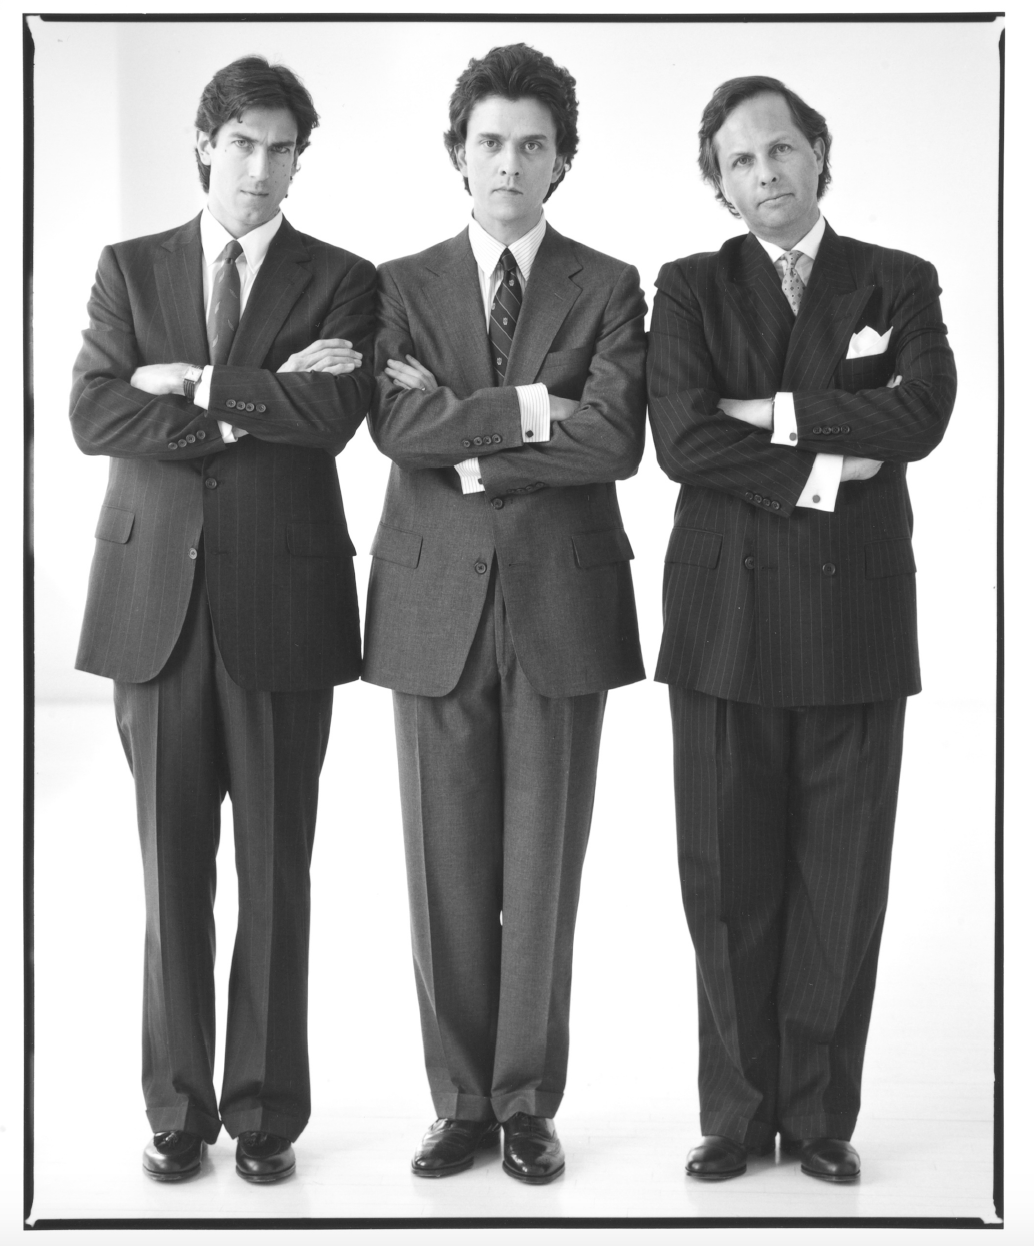 Spy 's founding team: Tom Phillips, Kurt Andersen, and Graydon Carter for Barneys, 1988.  Photo by Annie Leibowitz